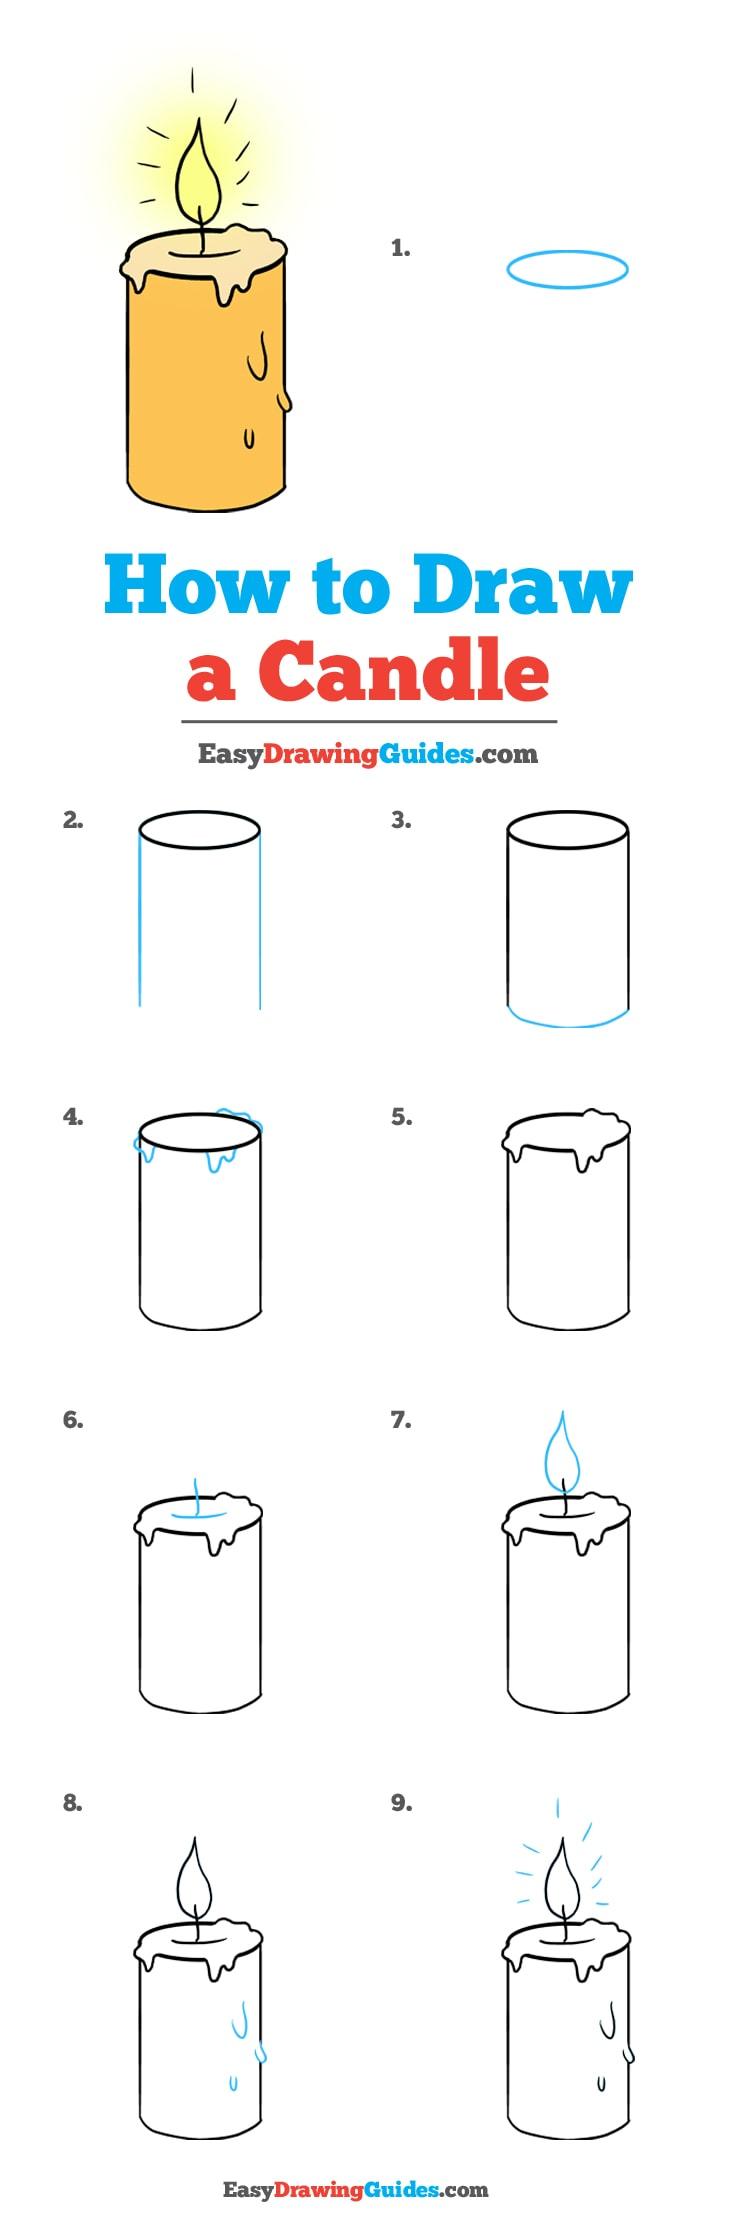 Light Up Your Paper with a Candle